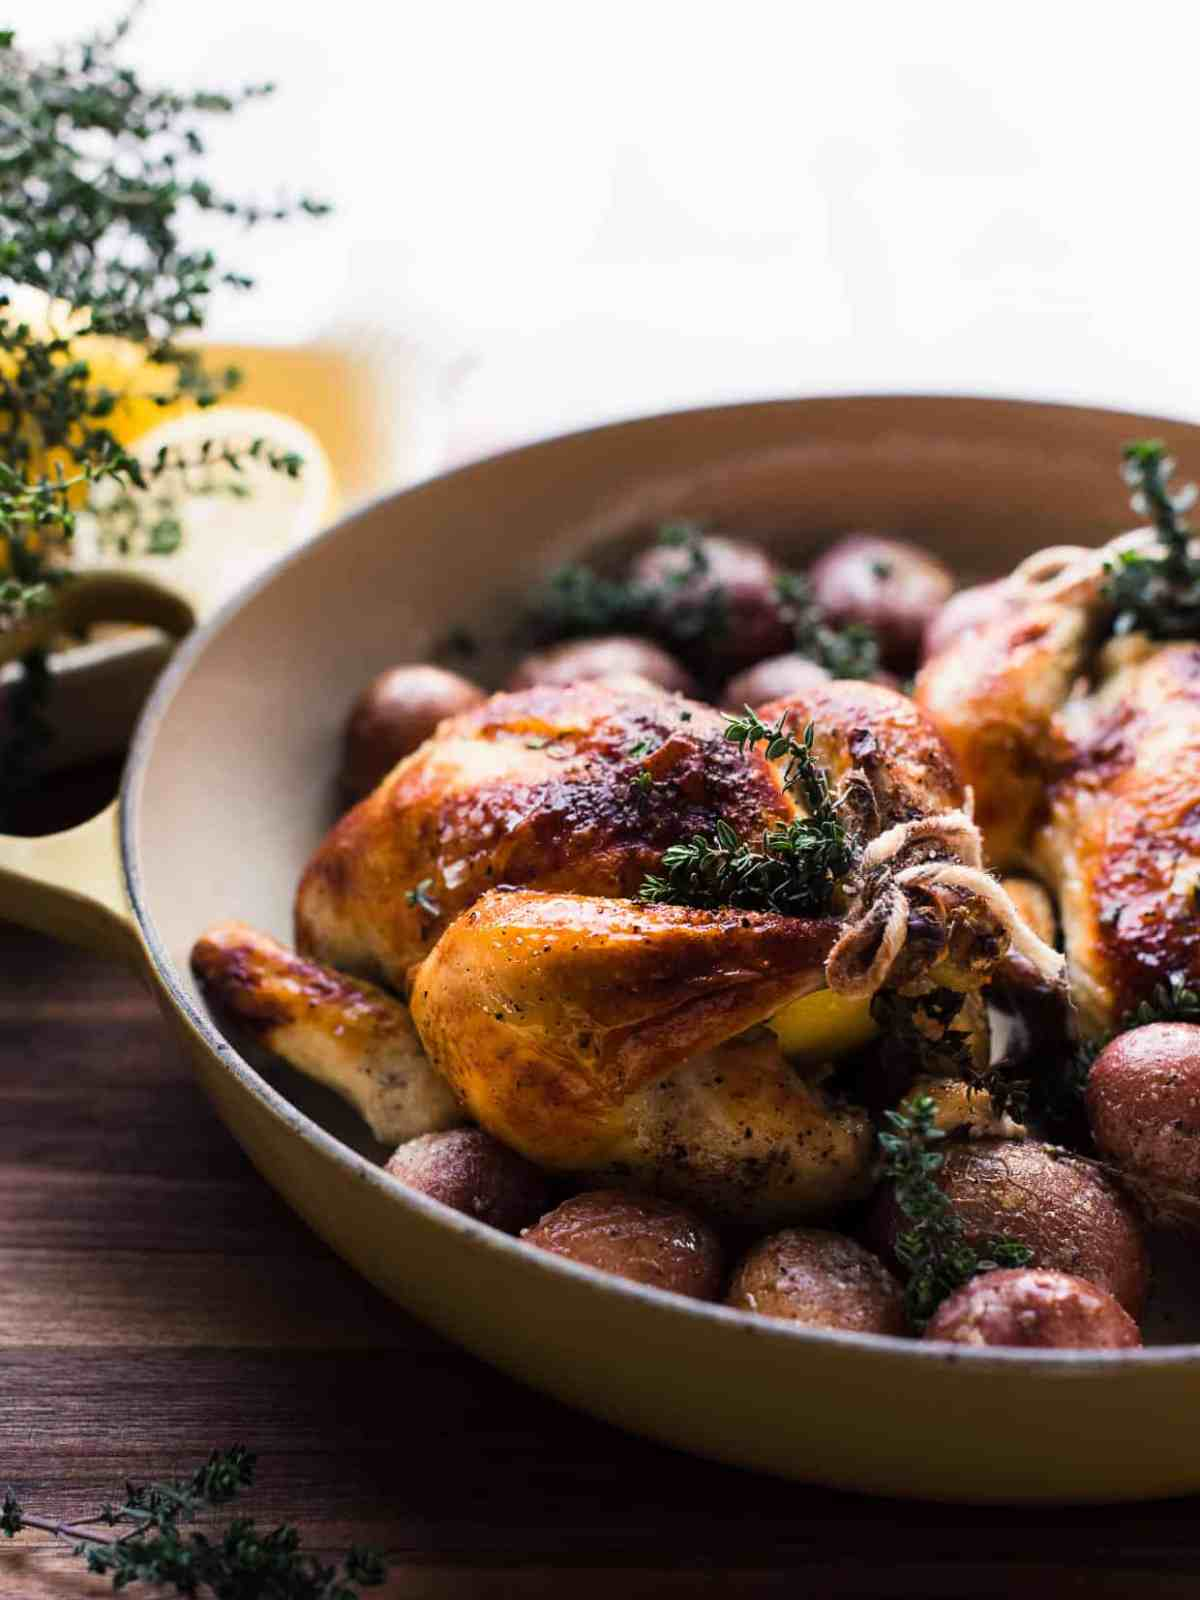 Roasted Buttermilk Brined Cornish Hens with sprigs of thyme on a bed of red potatoes.